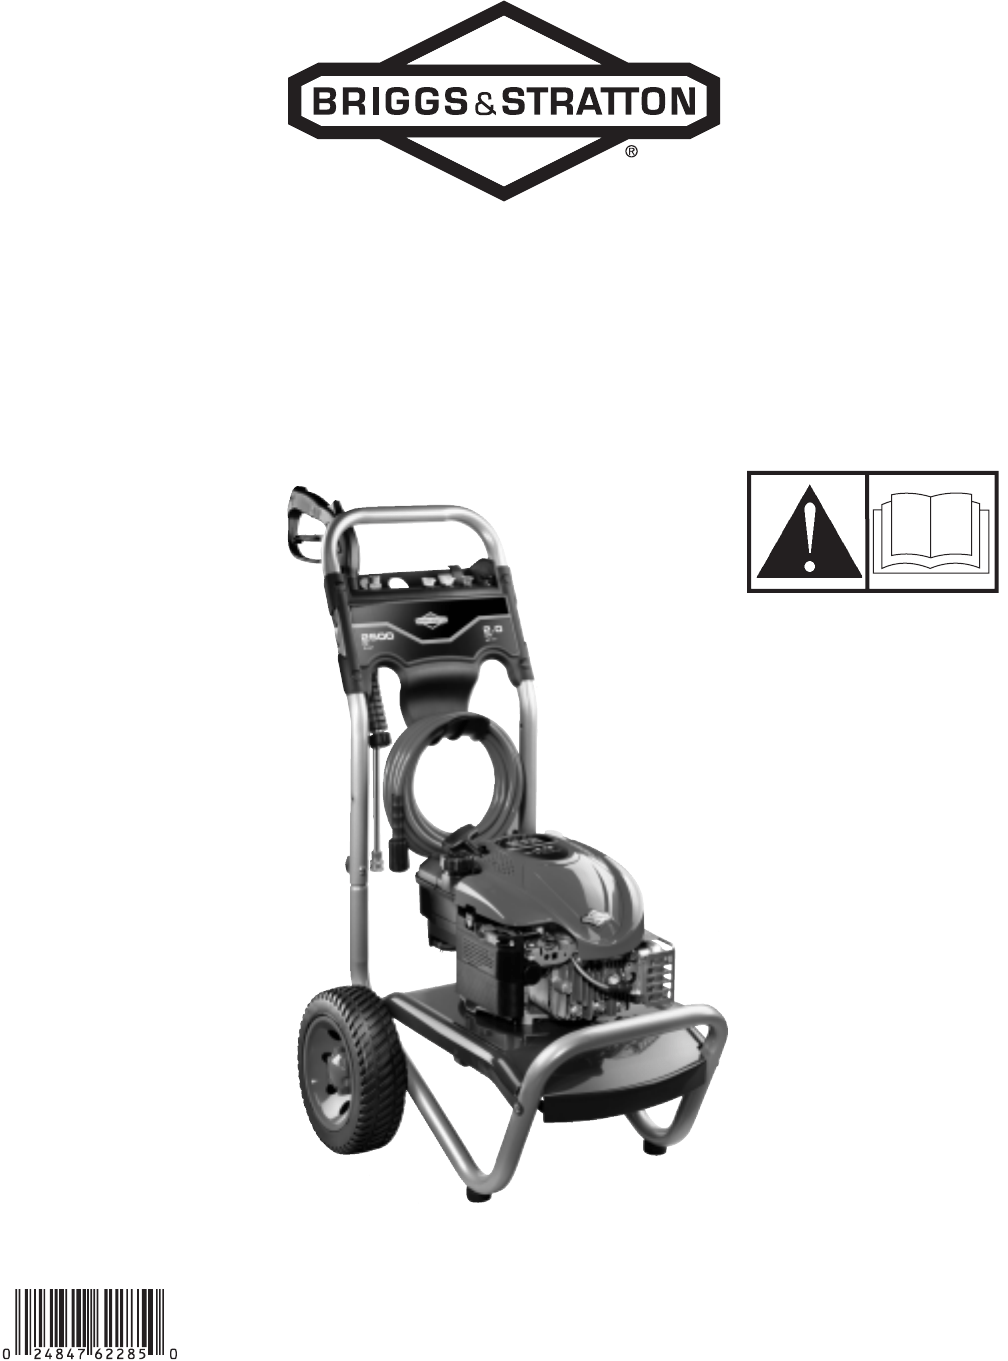 Briggs & Stratton Pressure Washer 2500 PSI User Guide